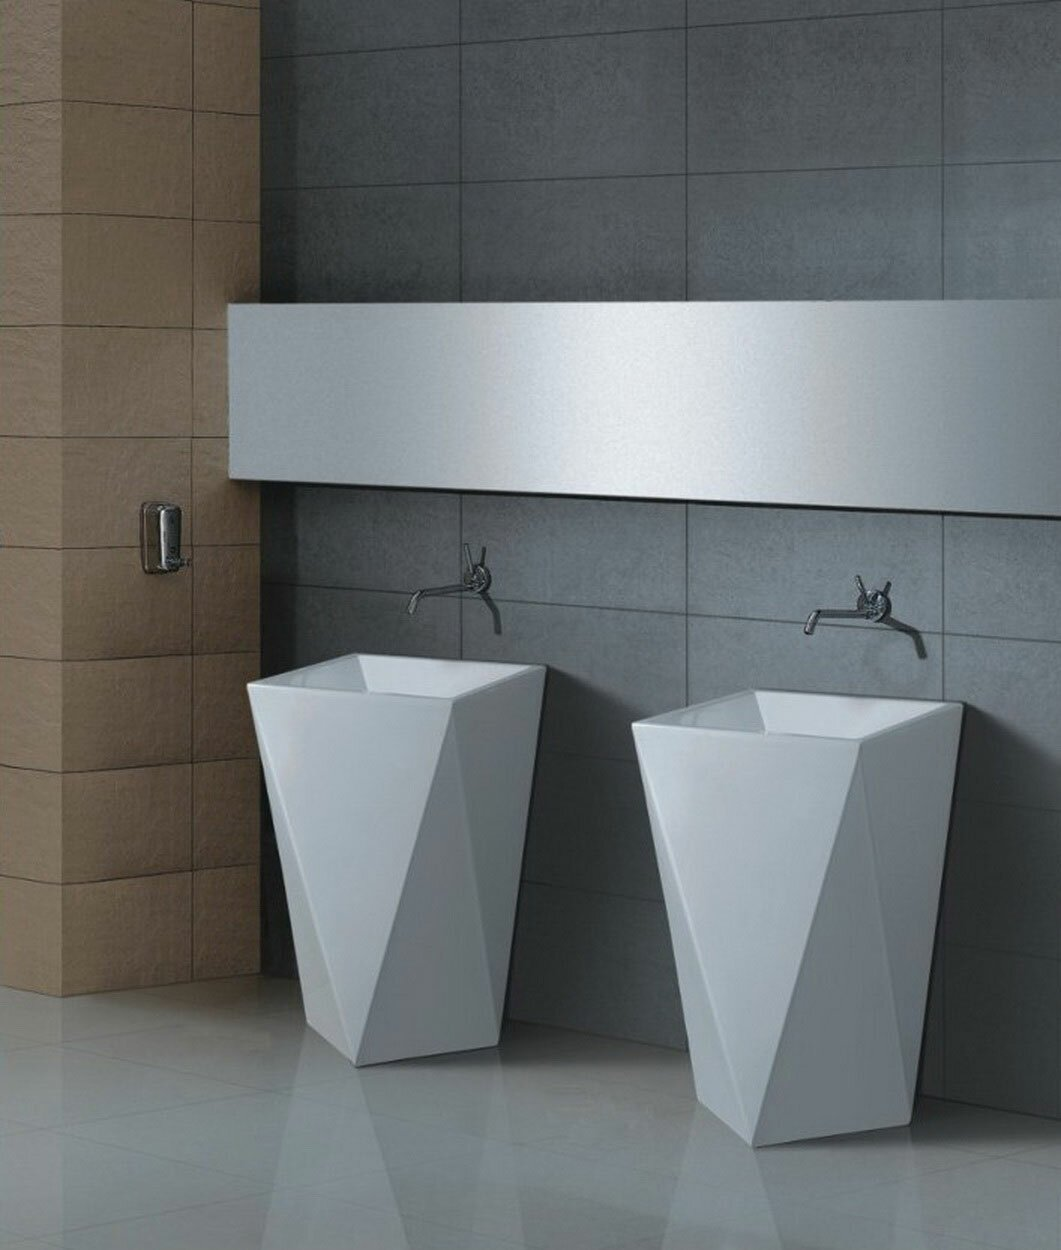 Waschbecken Modernes Design Top 15 Bathroom Sink Designs And Models Mostbeautifulthings